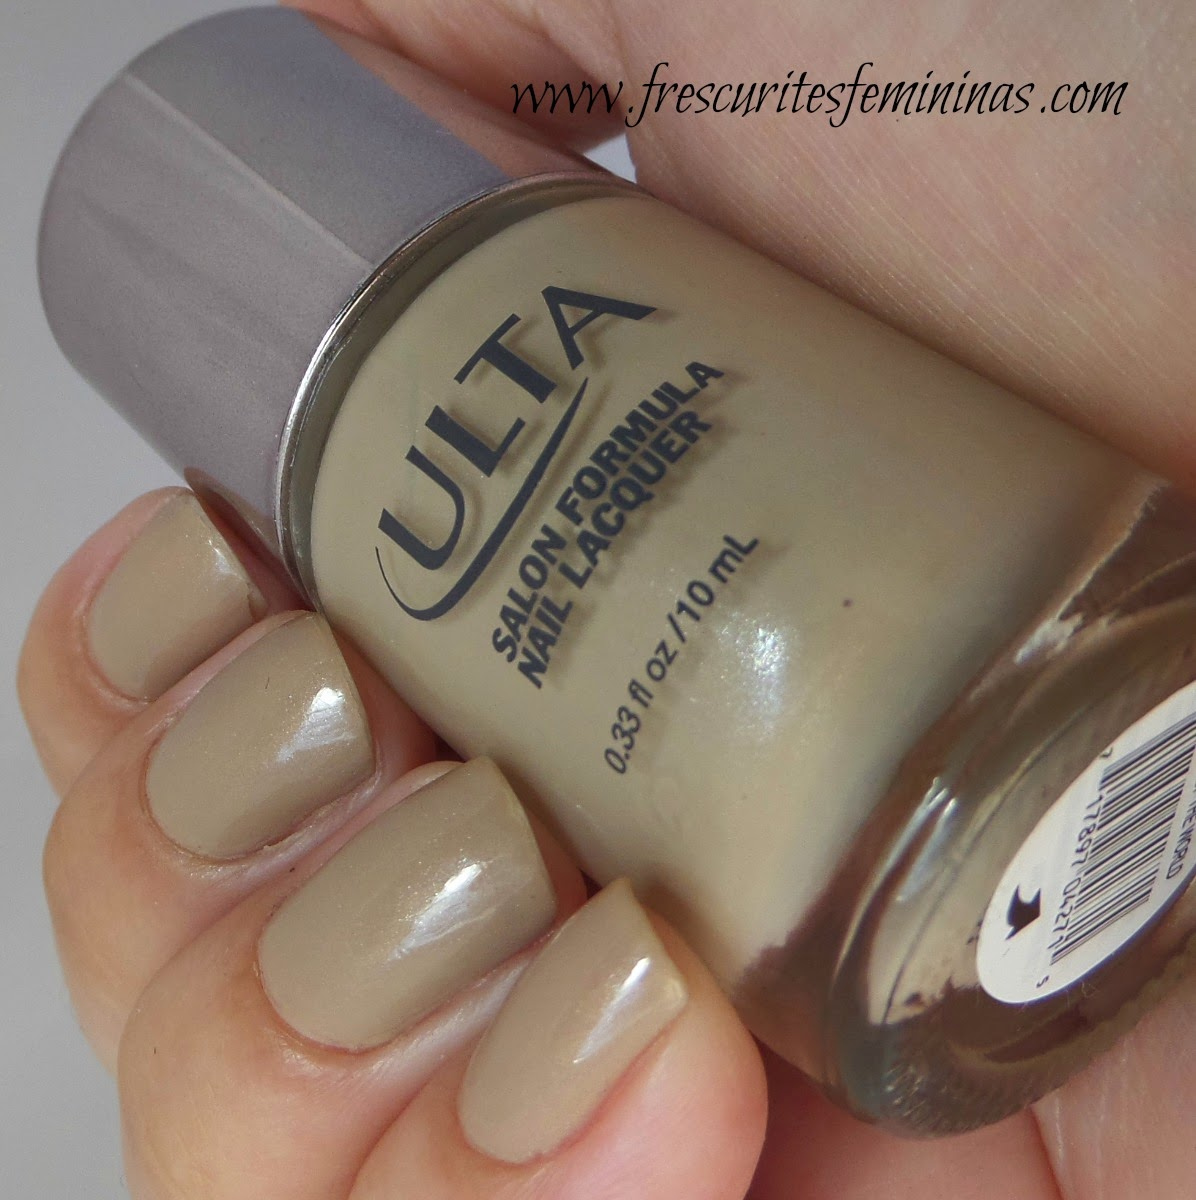 Ulta, Ulta Nail Polish, on taupe of the world, frescurites femininas, esmalte nude